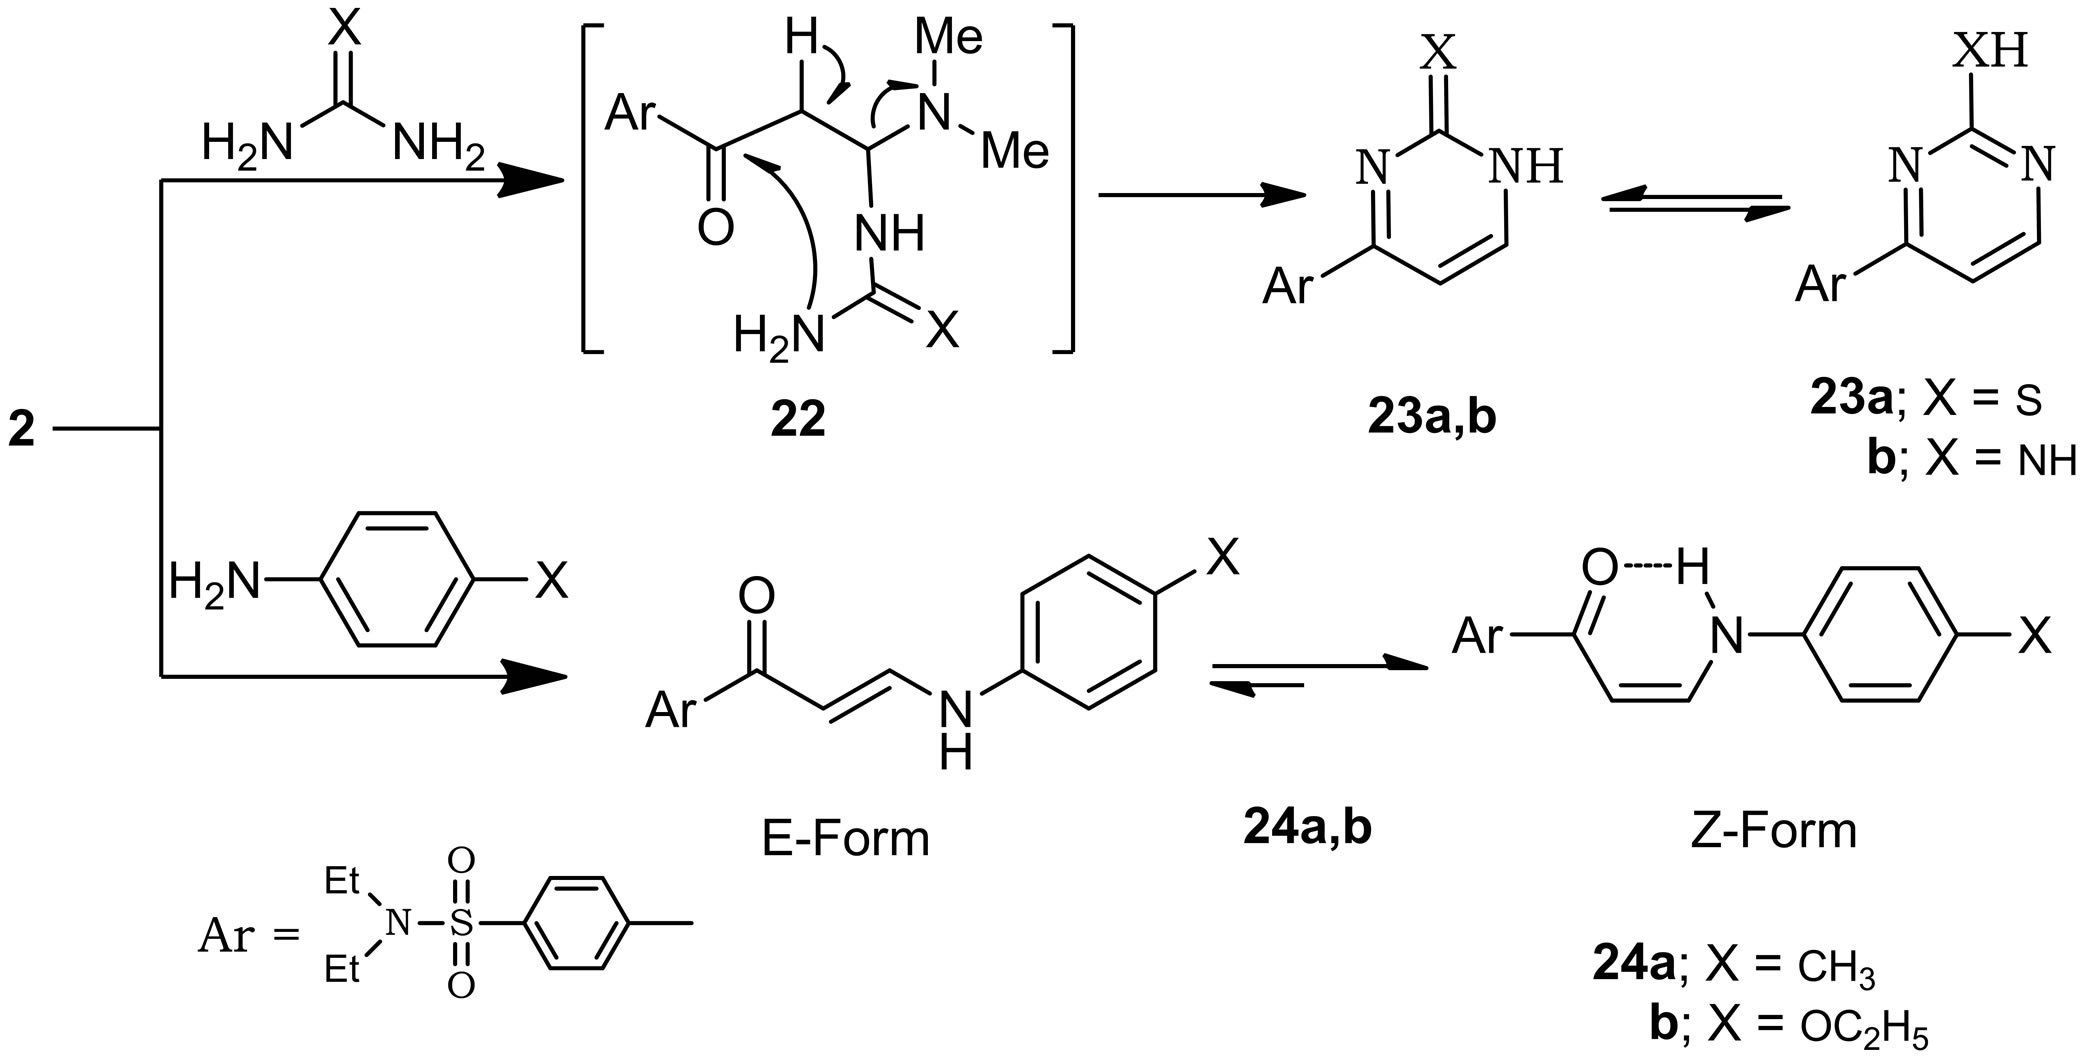 Synthesis and Reactions of Five-Membered Heterocycles